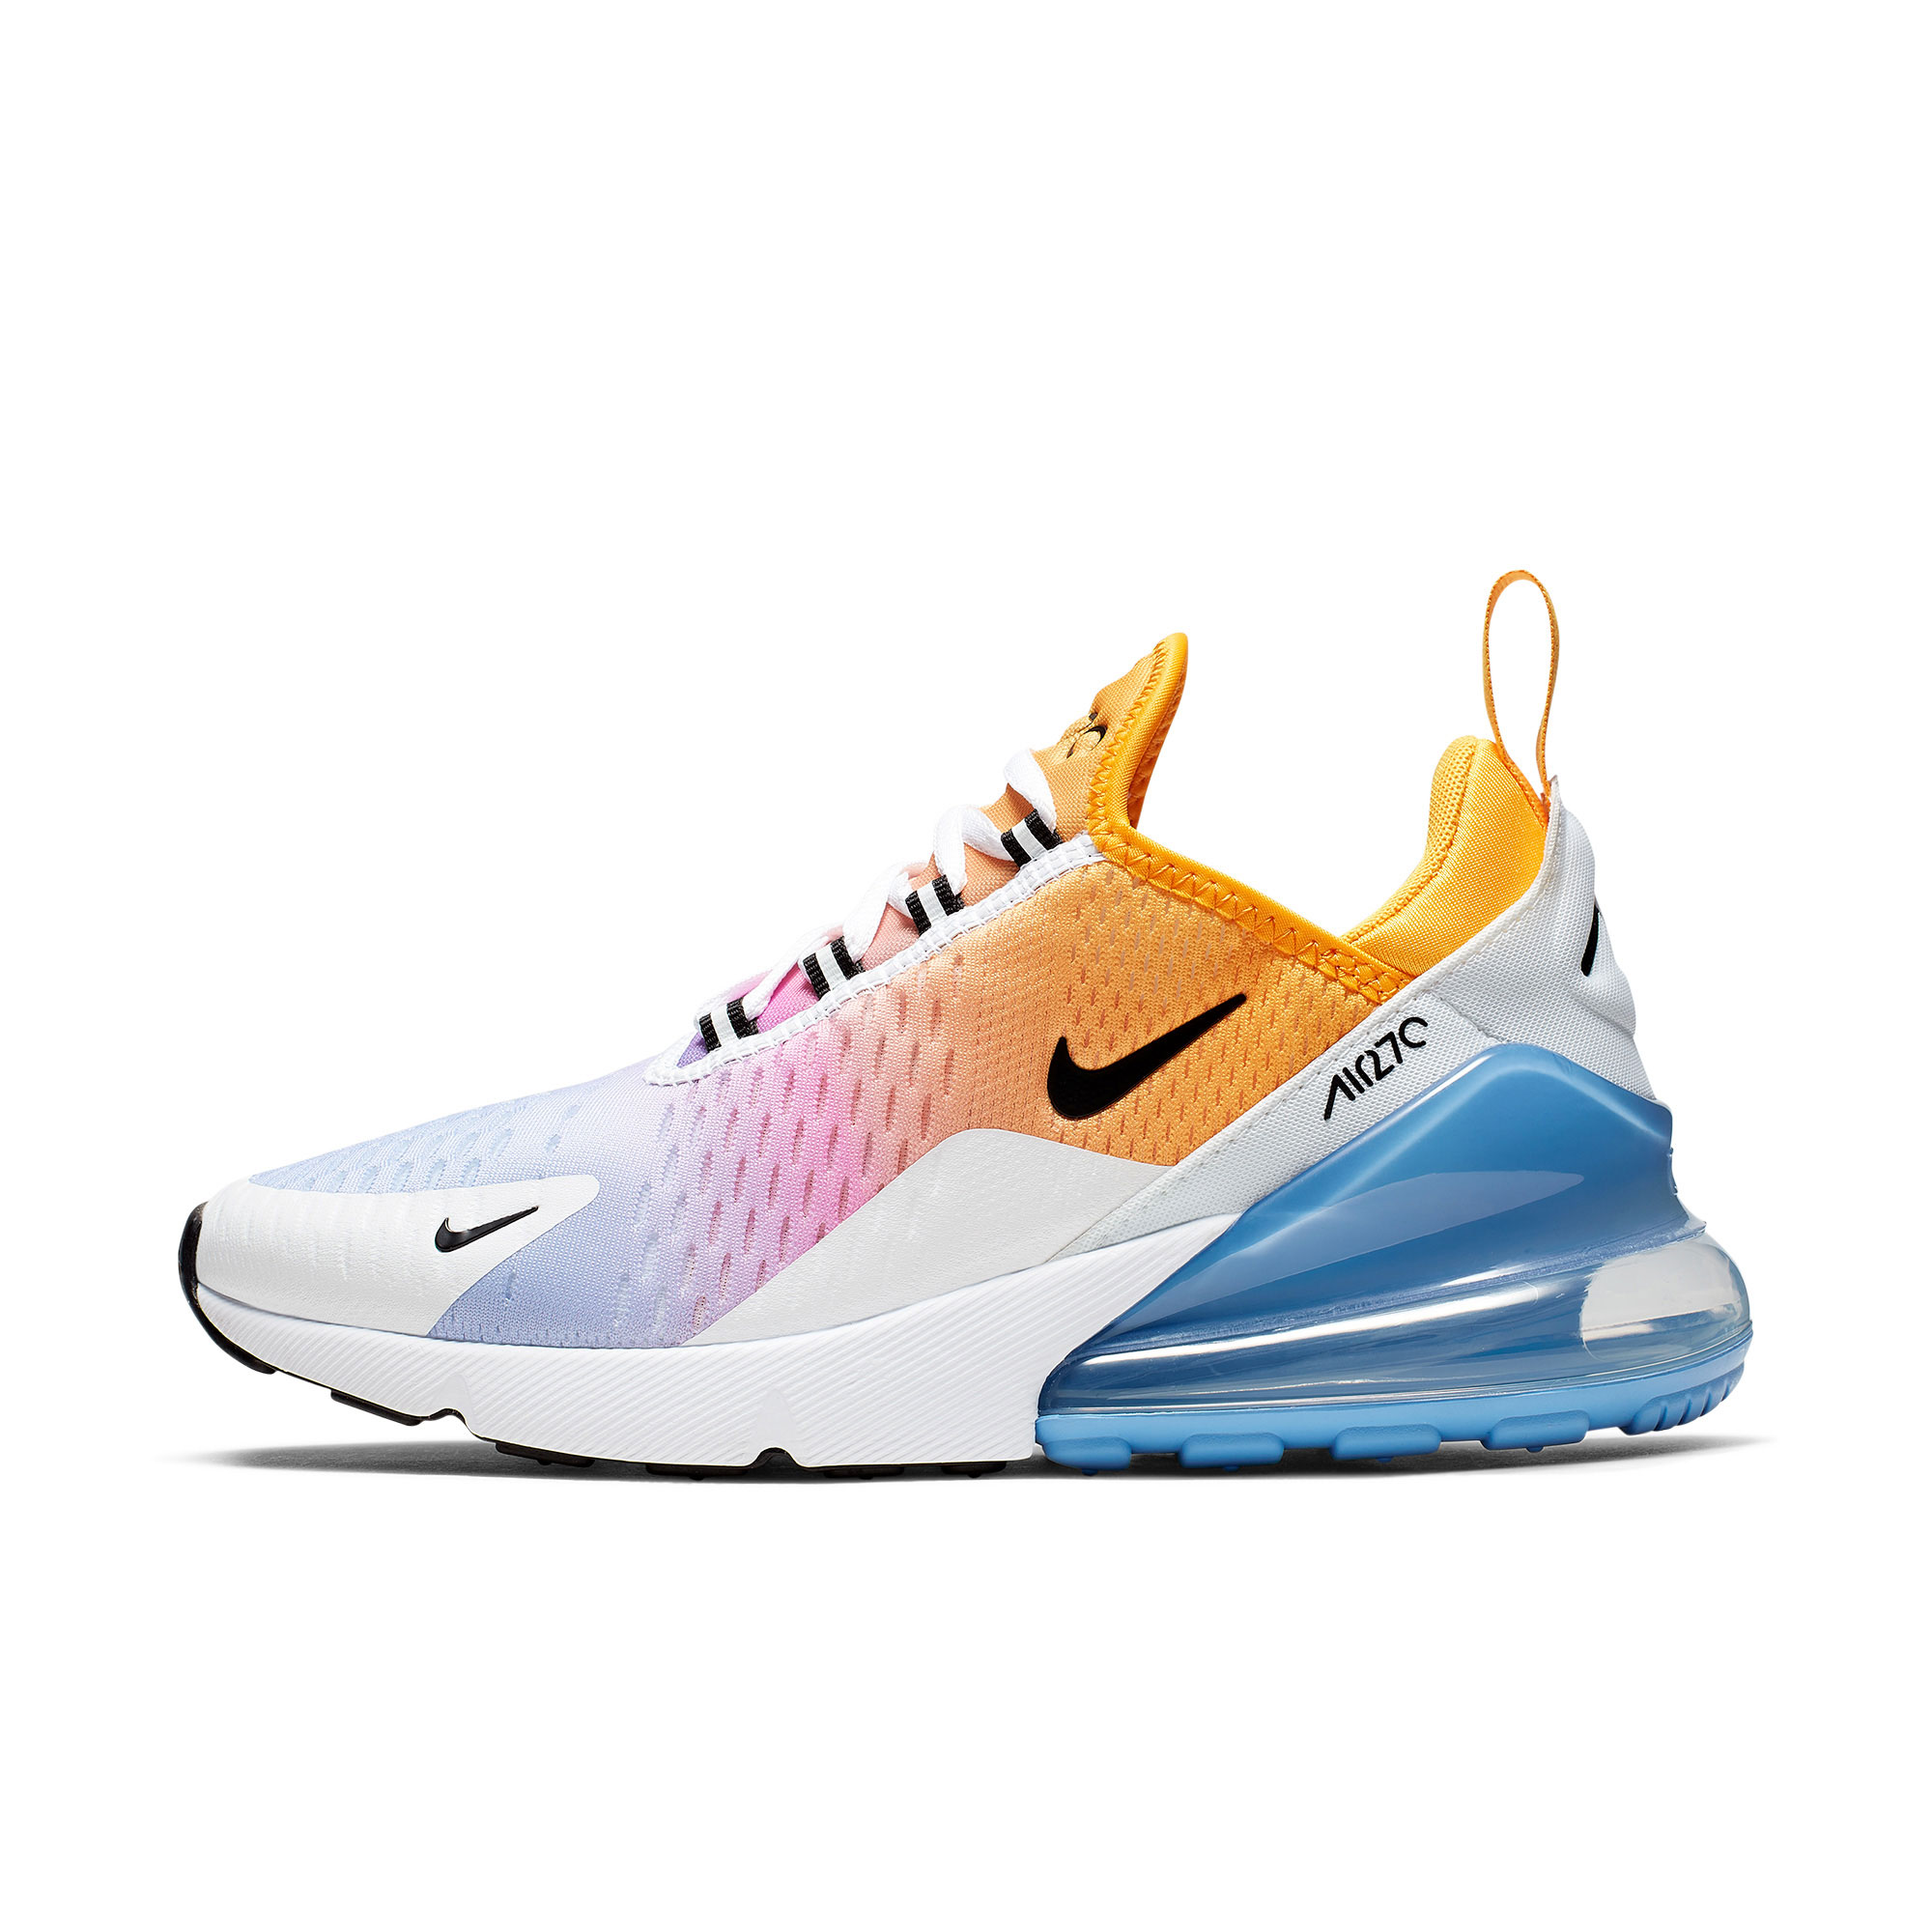 US $60.0 40% OFF|Original Nike Air Max 270 Women's Running Shoes Sneakers Good Quality Sport Massage Lace Up Outdoor Athletic Breathable AH8050 in